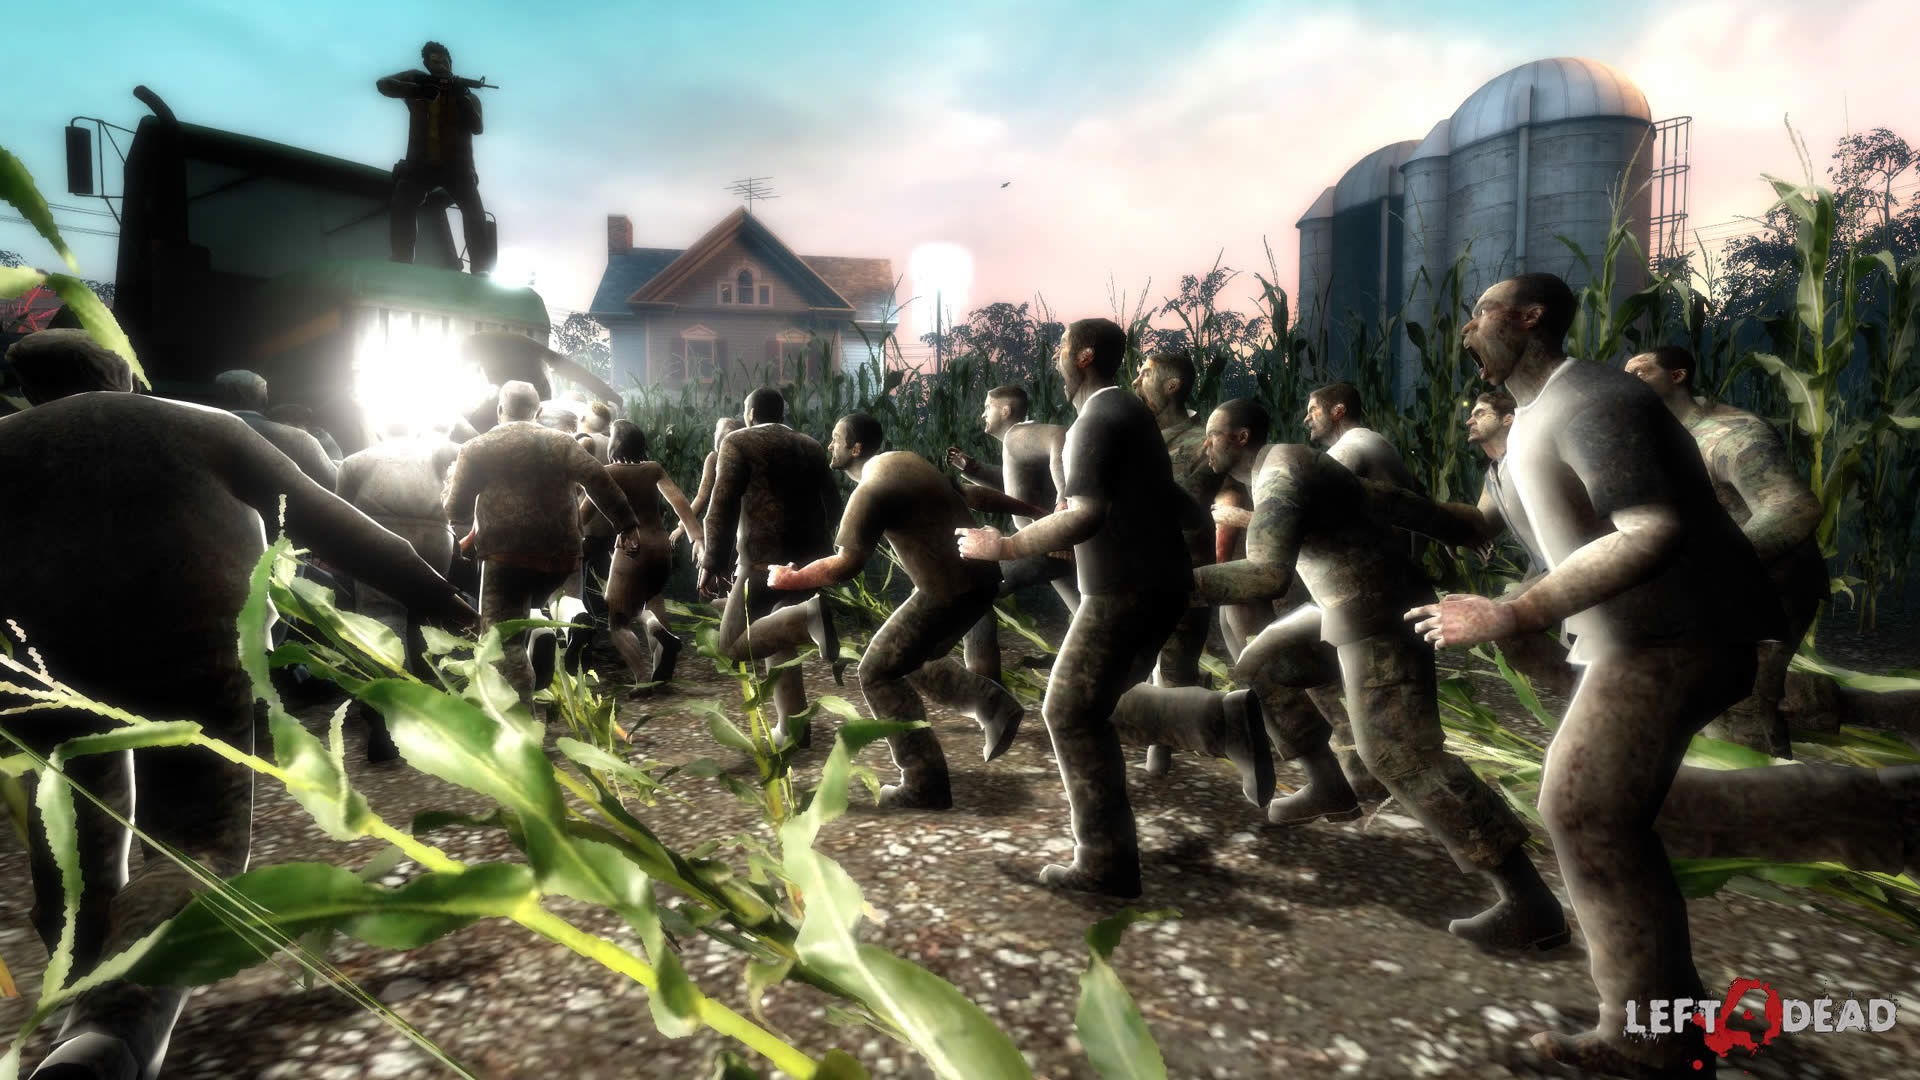 Left 4 Dead Wallpapers Pictures Images